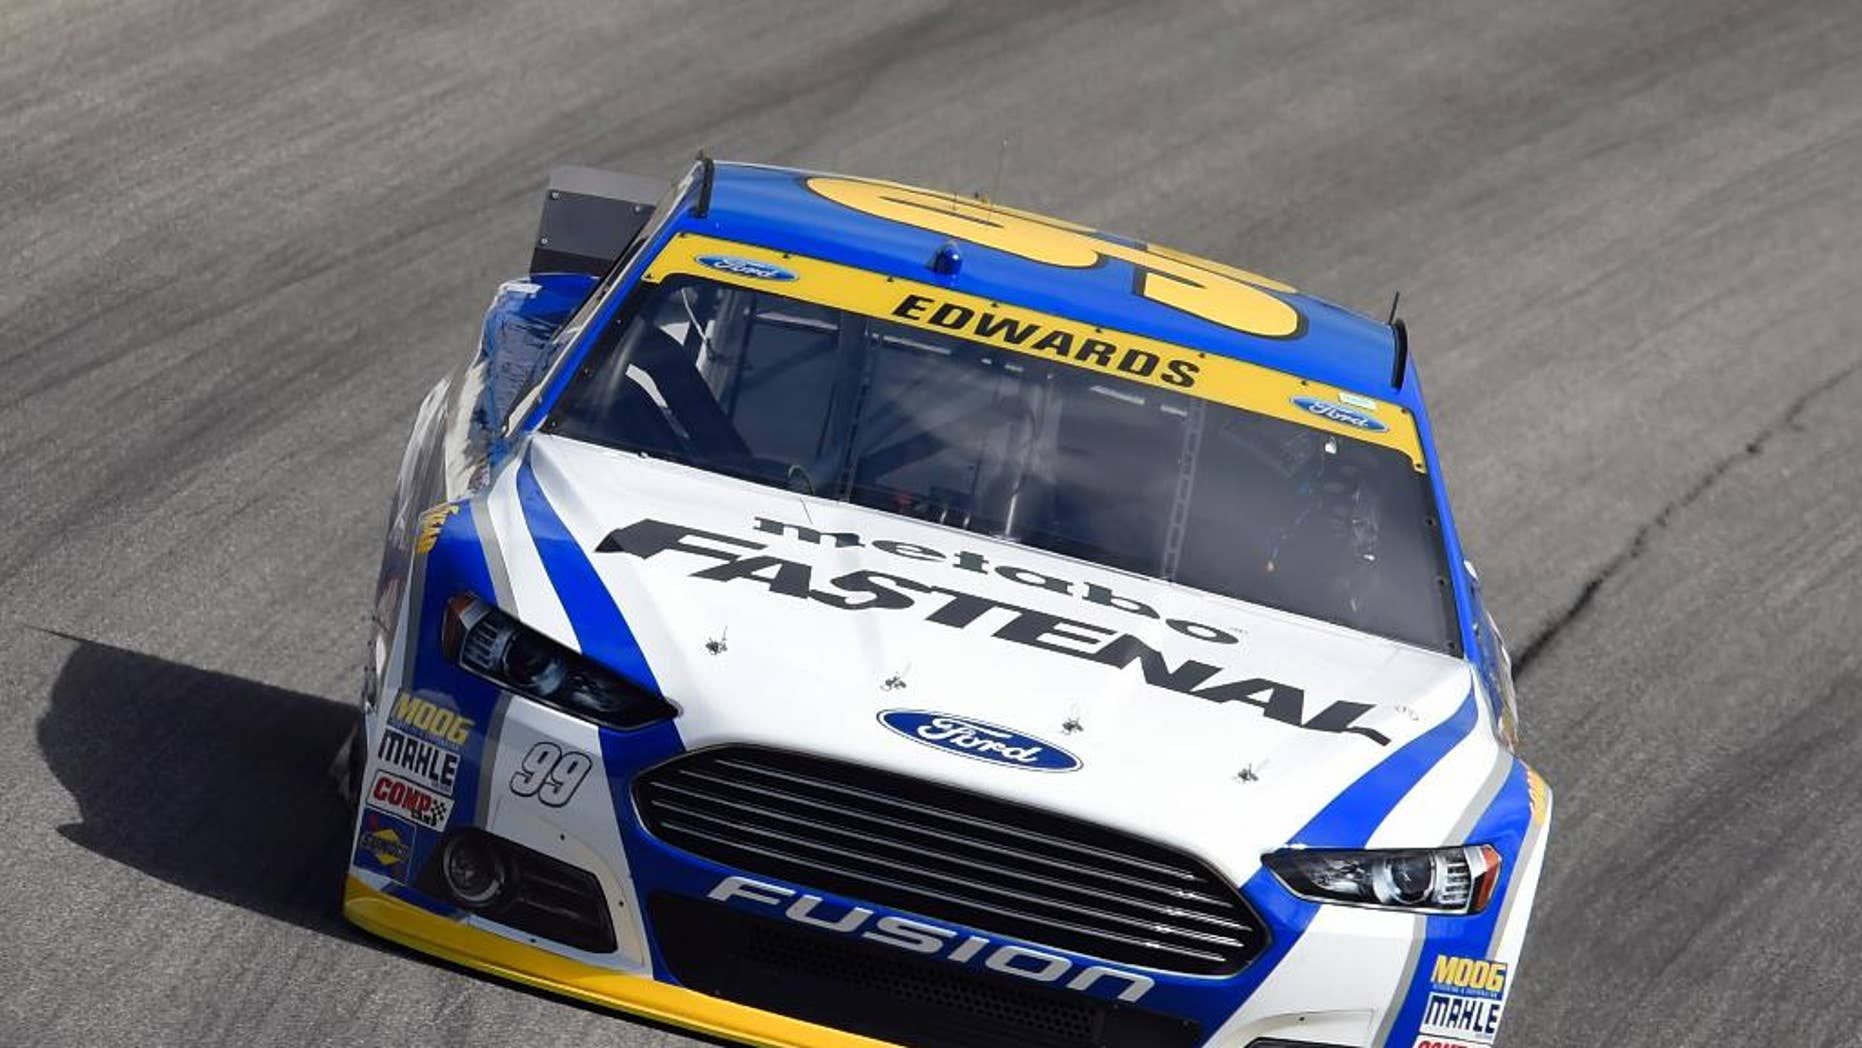 NASCAR driver Carl Edwards (99) drives during a practice for the NASCAR Sprint Cup Series auto race at Chicagoland Speedway in Joliet, Ill., Saturday, Sept. 13, 2014. (AP Photo/Paul J. Bergstrom)